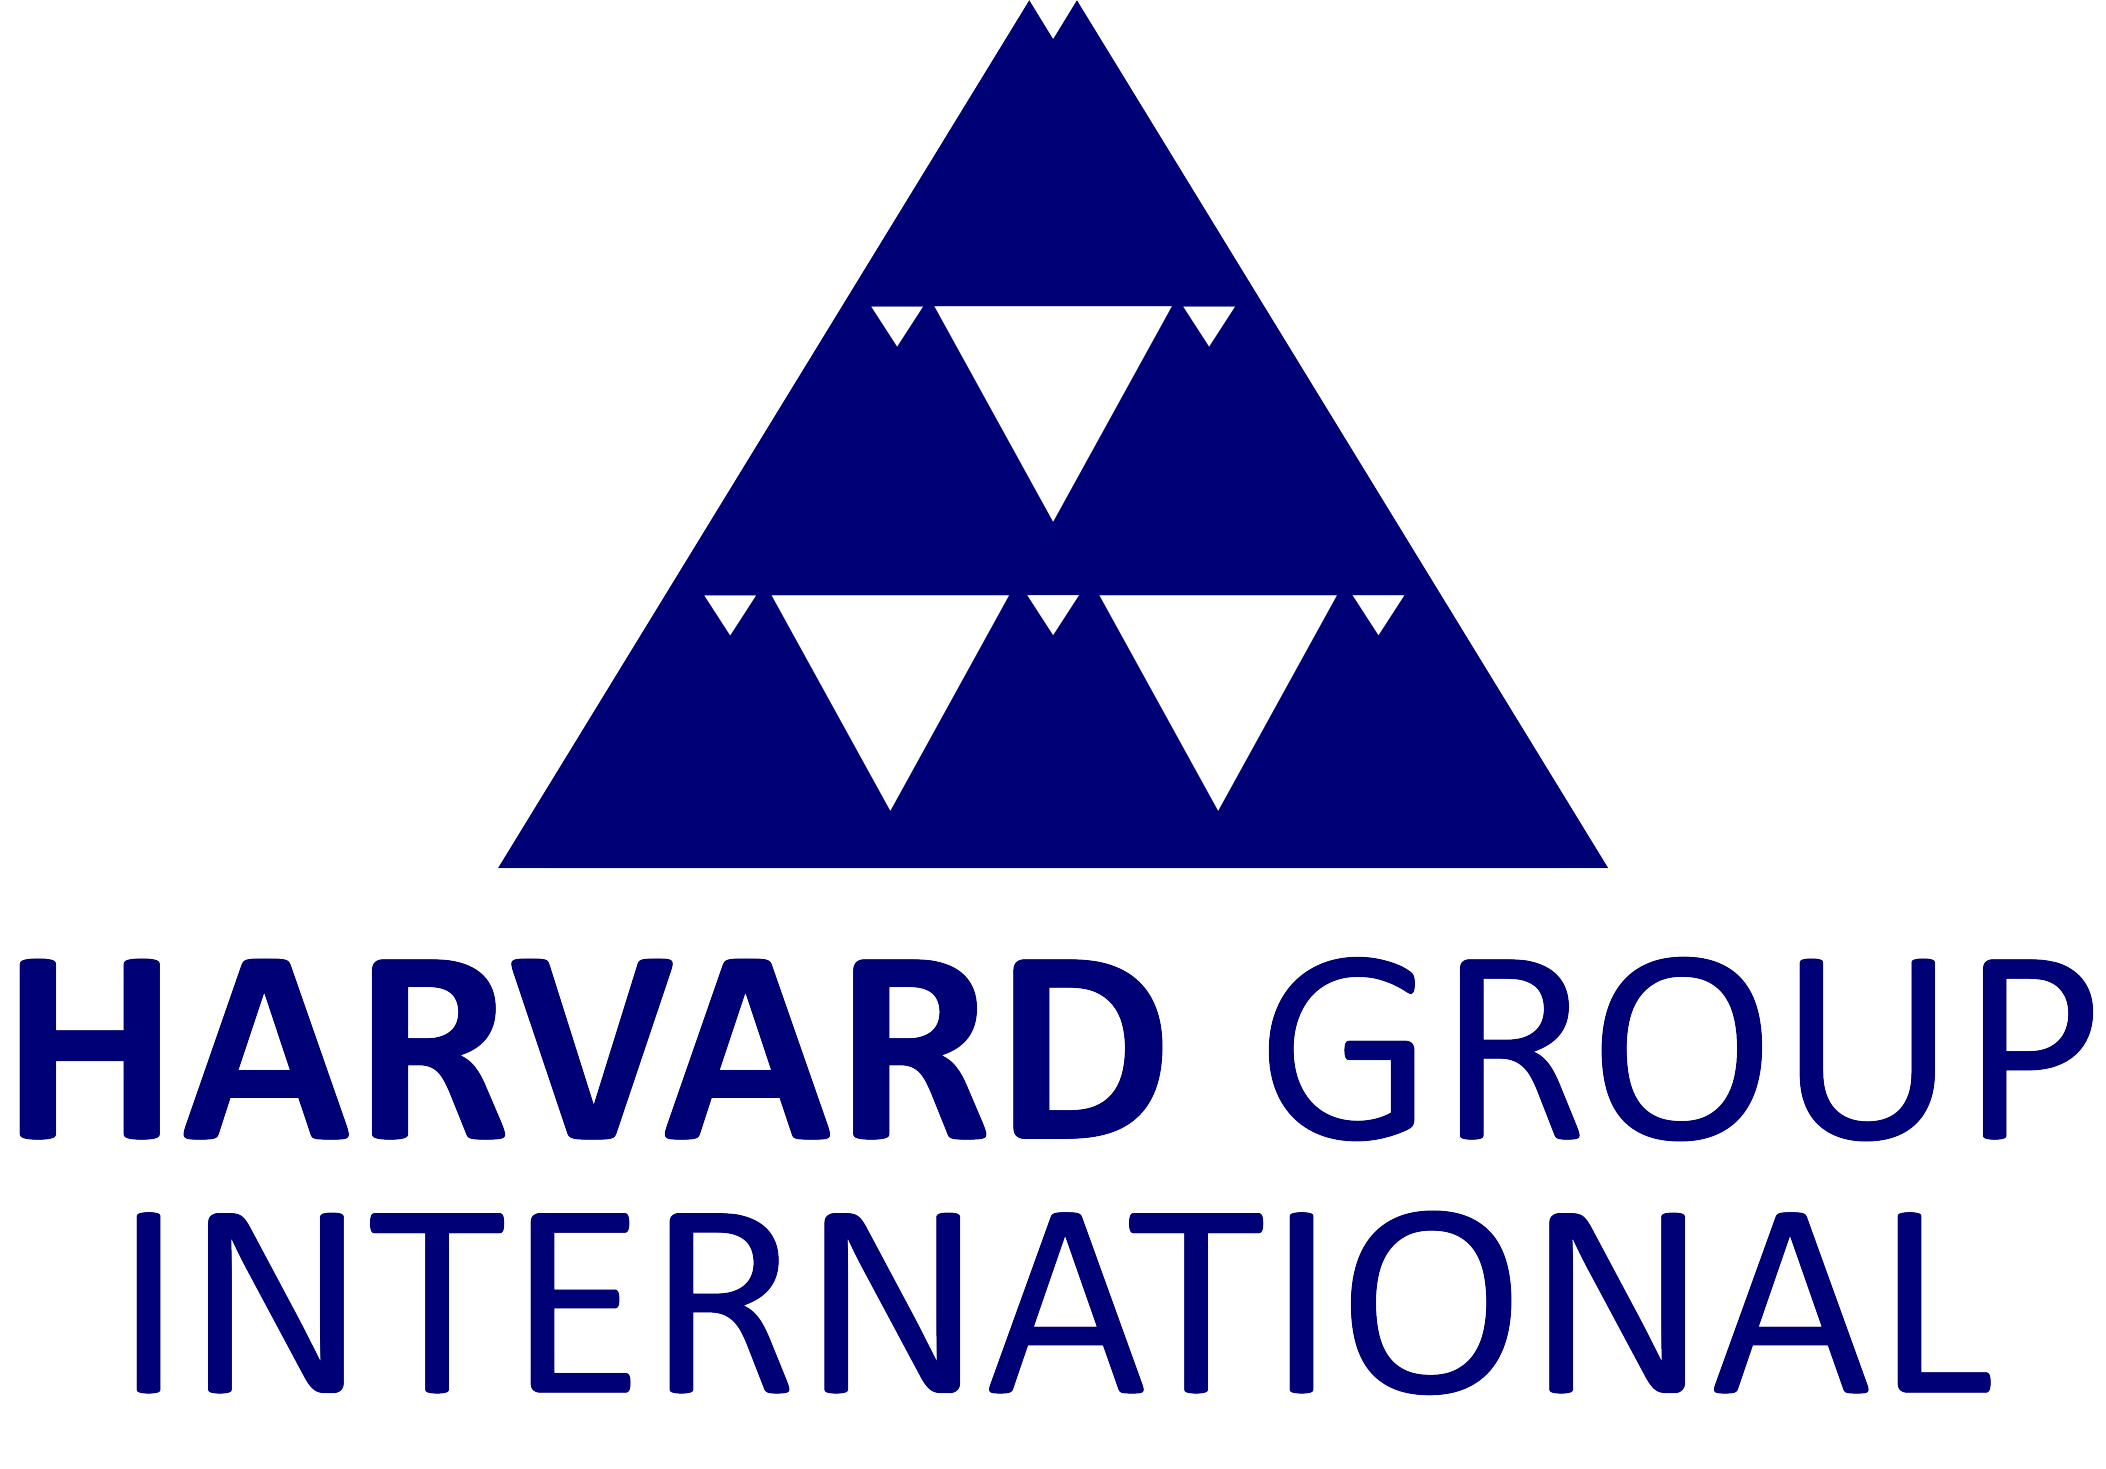 Harvard Group International